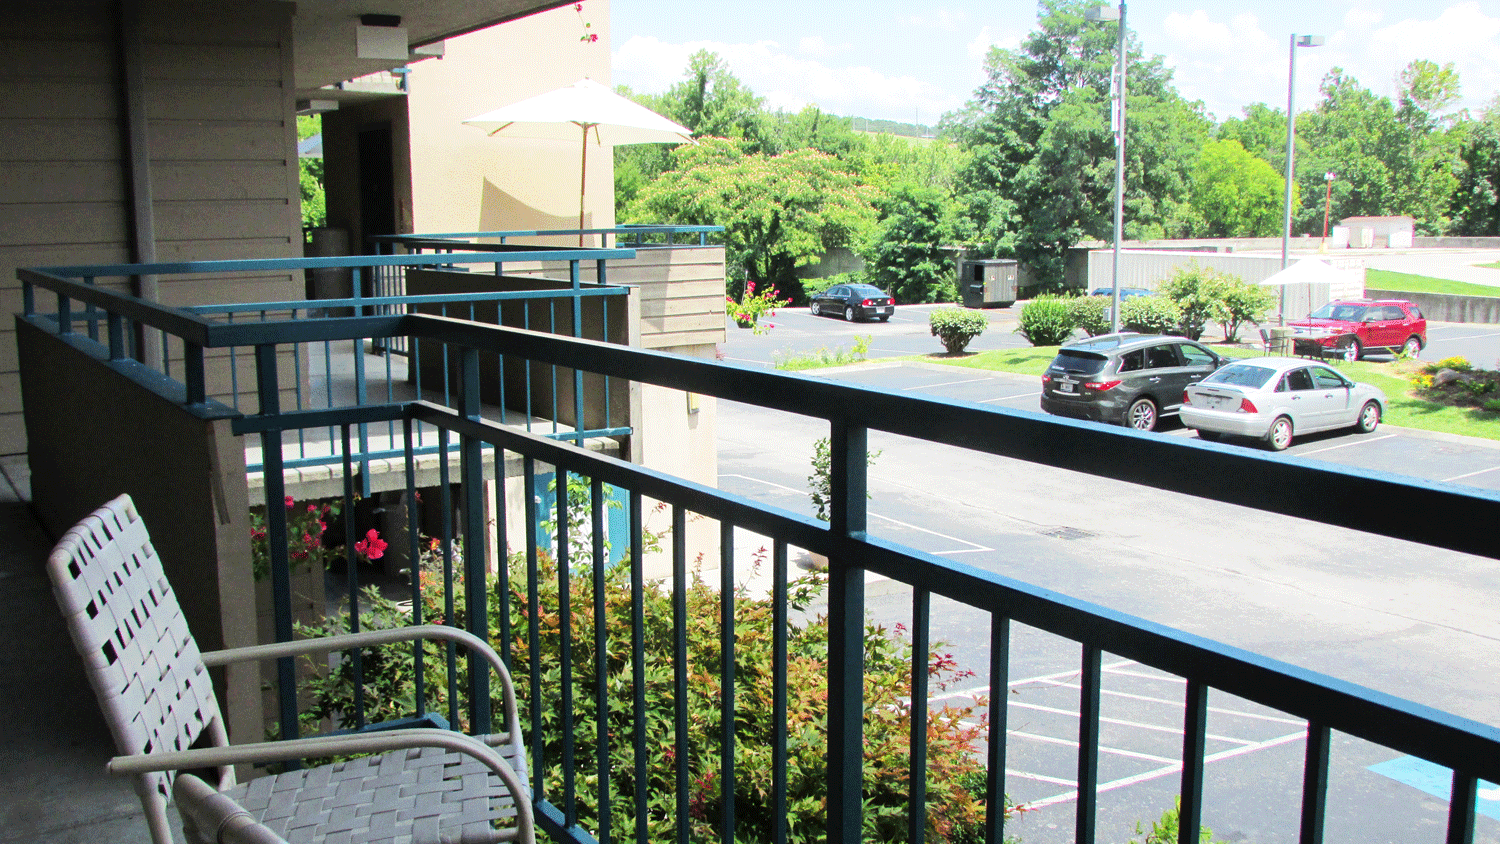 Balcony - corridor style for classic motel rooms in Pigeon Forge